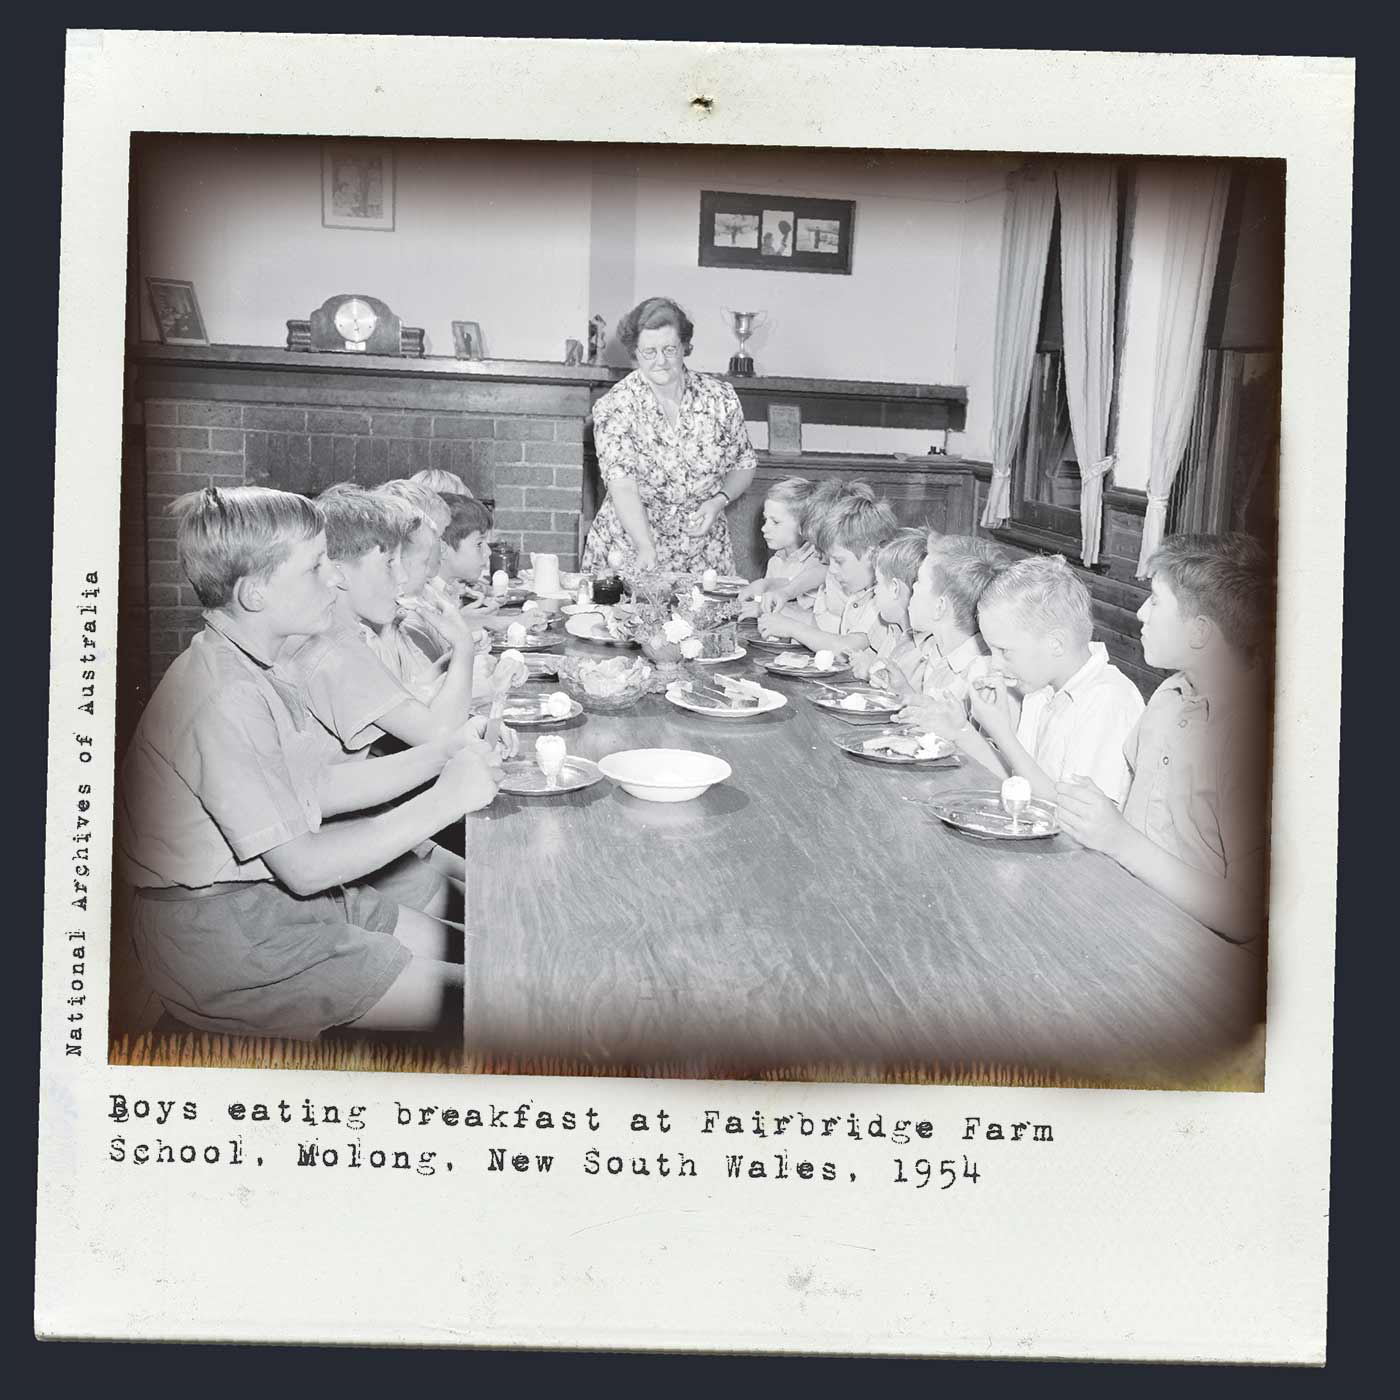 An image of a black and white Polaroid photo of boys sitting around a table eating a meal. There is a middle-aged woman serving at the end of the table. Typewritten text below reads 'Boys eating breakfast at Fairbridge Farm School, Molong, New South Wales, 1954'. 'National Archives of Australia' is typed along the left side. - click to view larger image